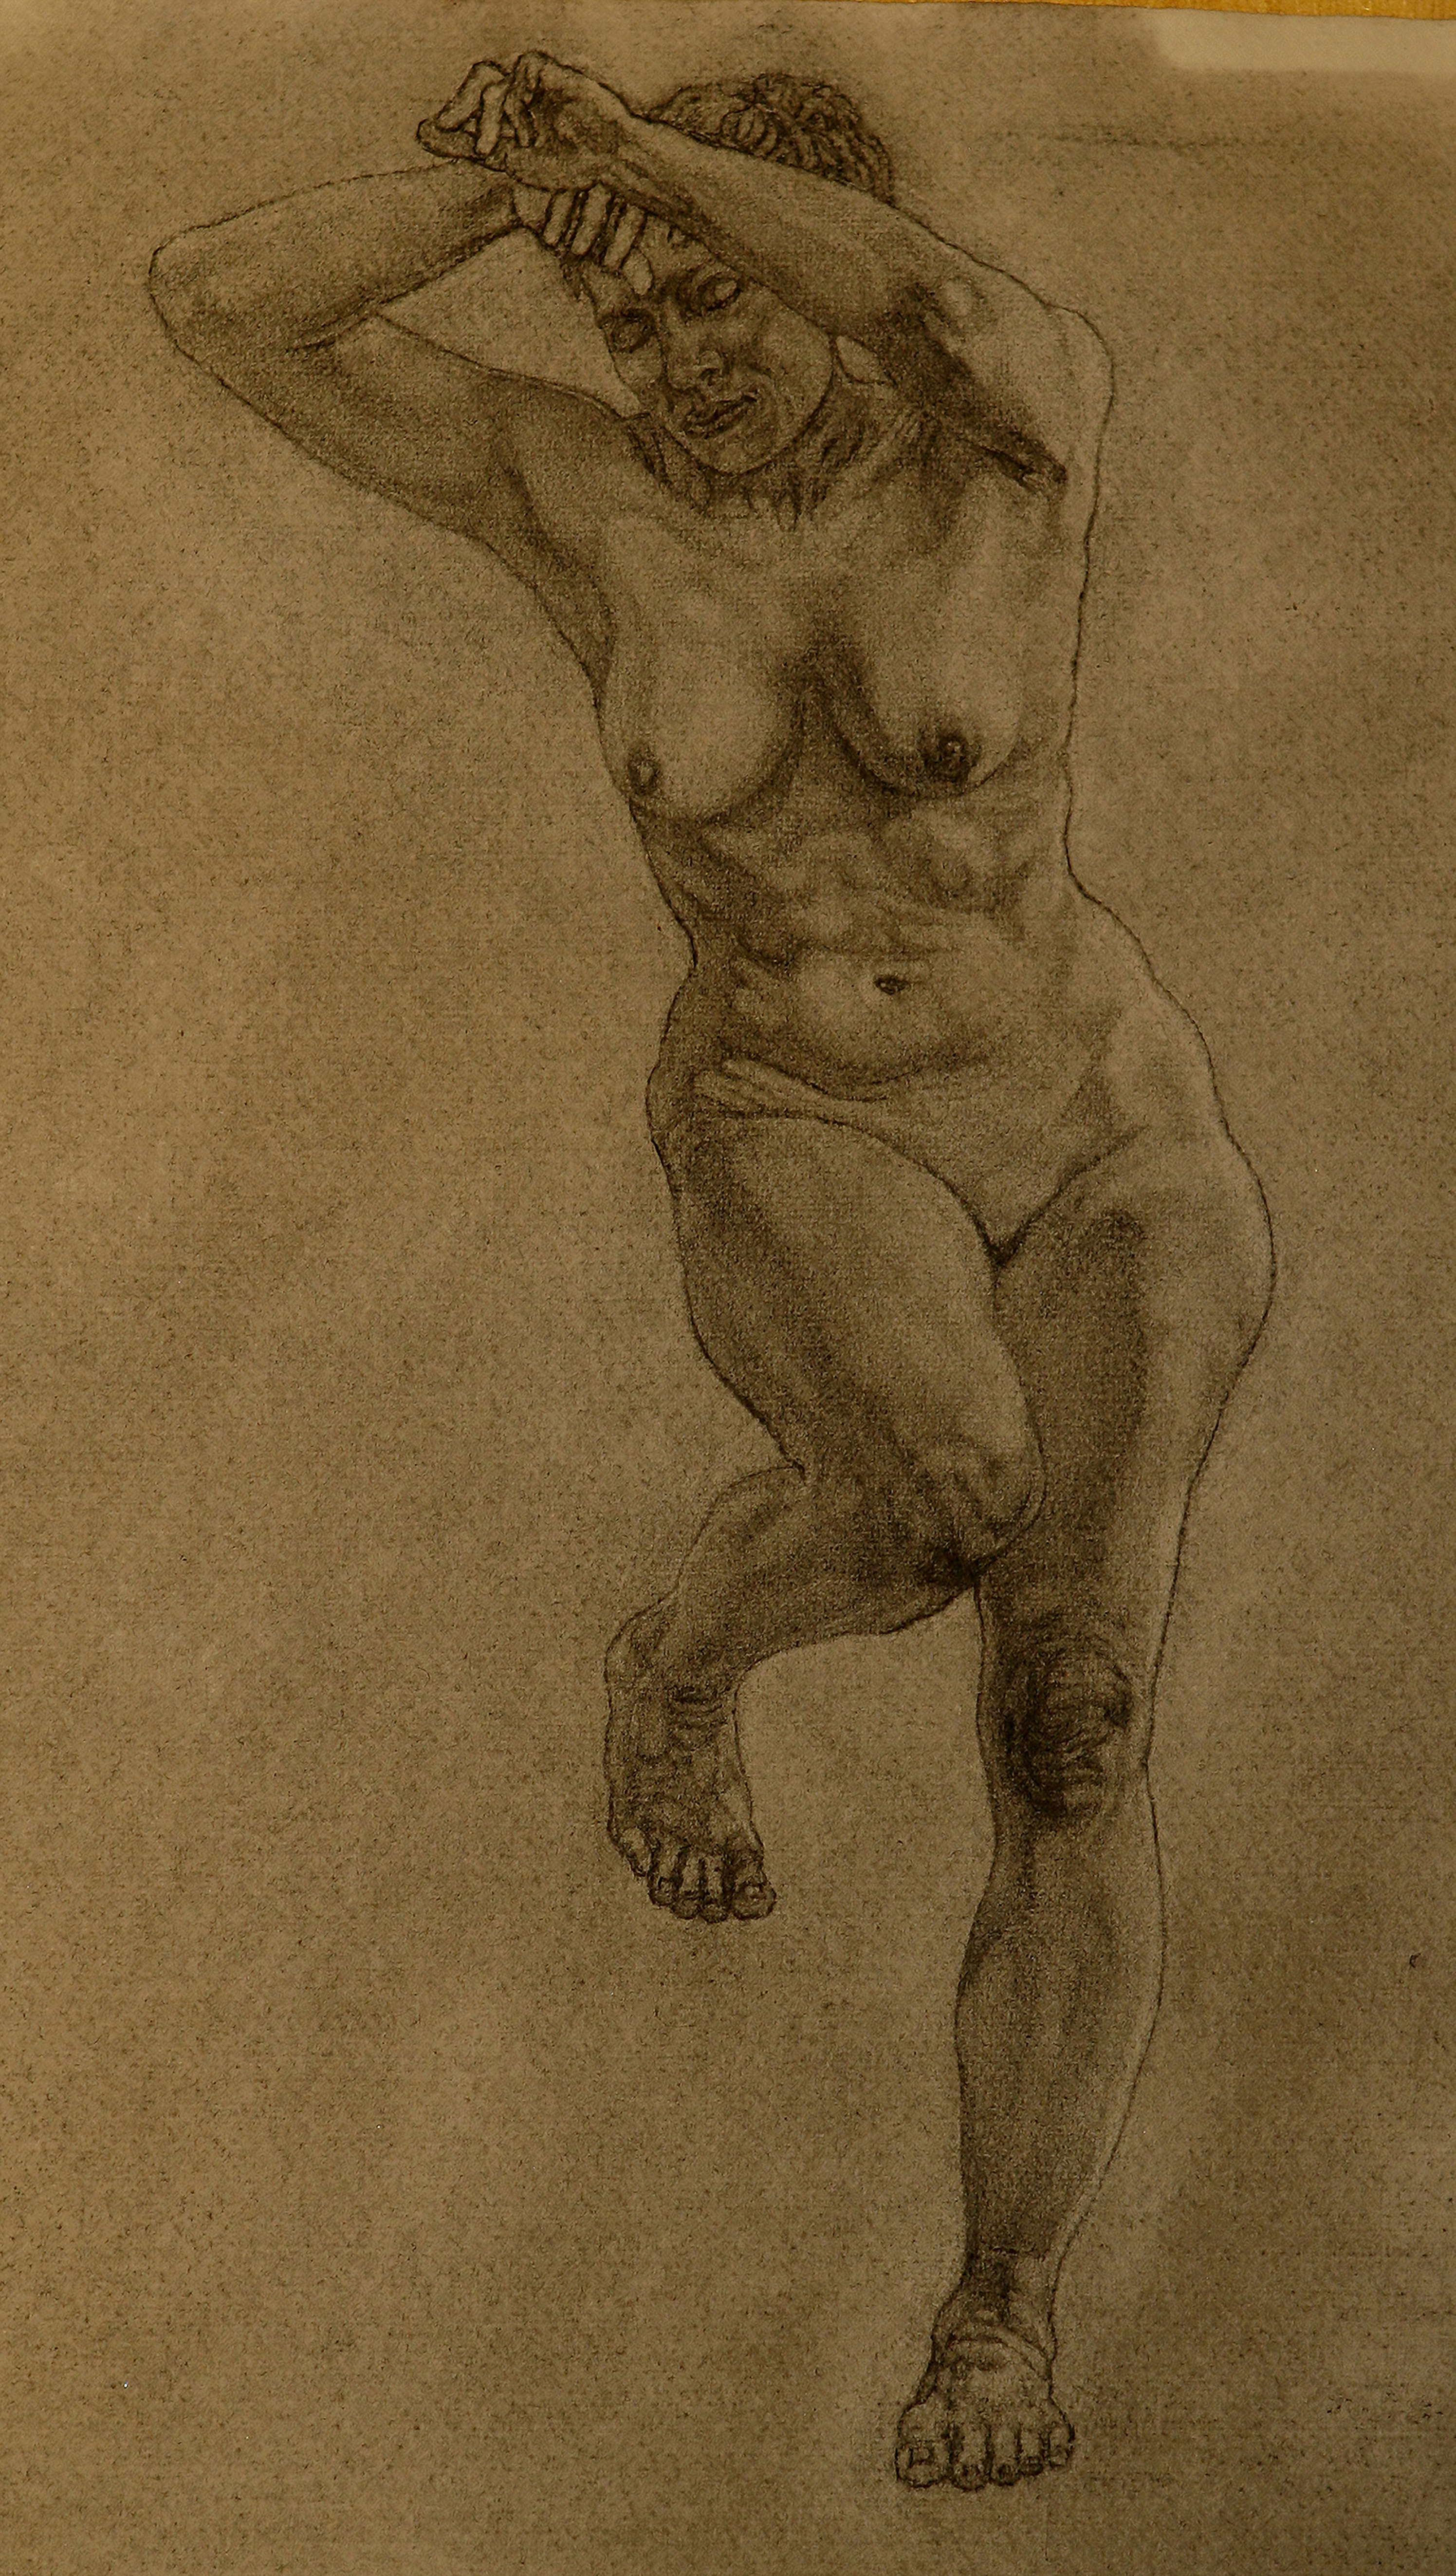 Paula, from front view, charcoal drawing from life model